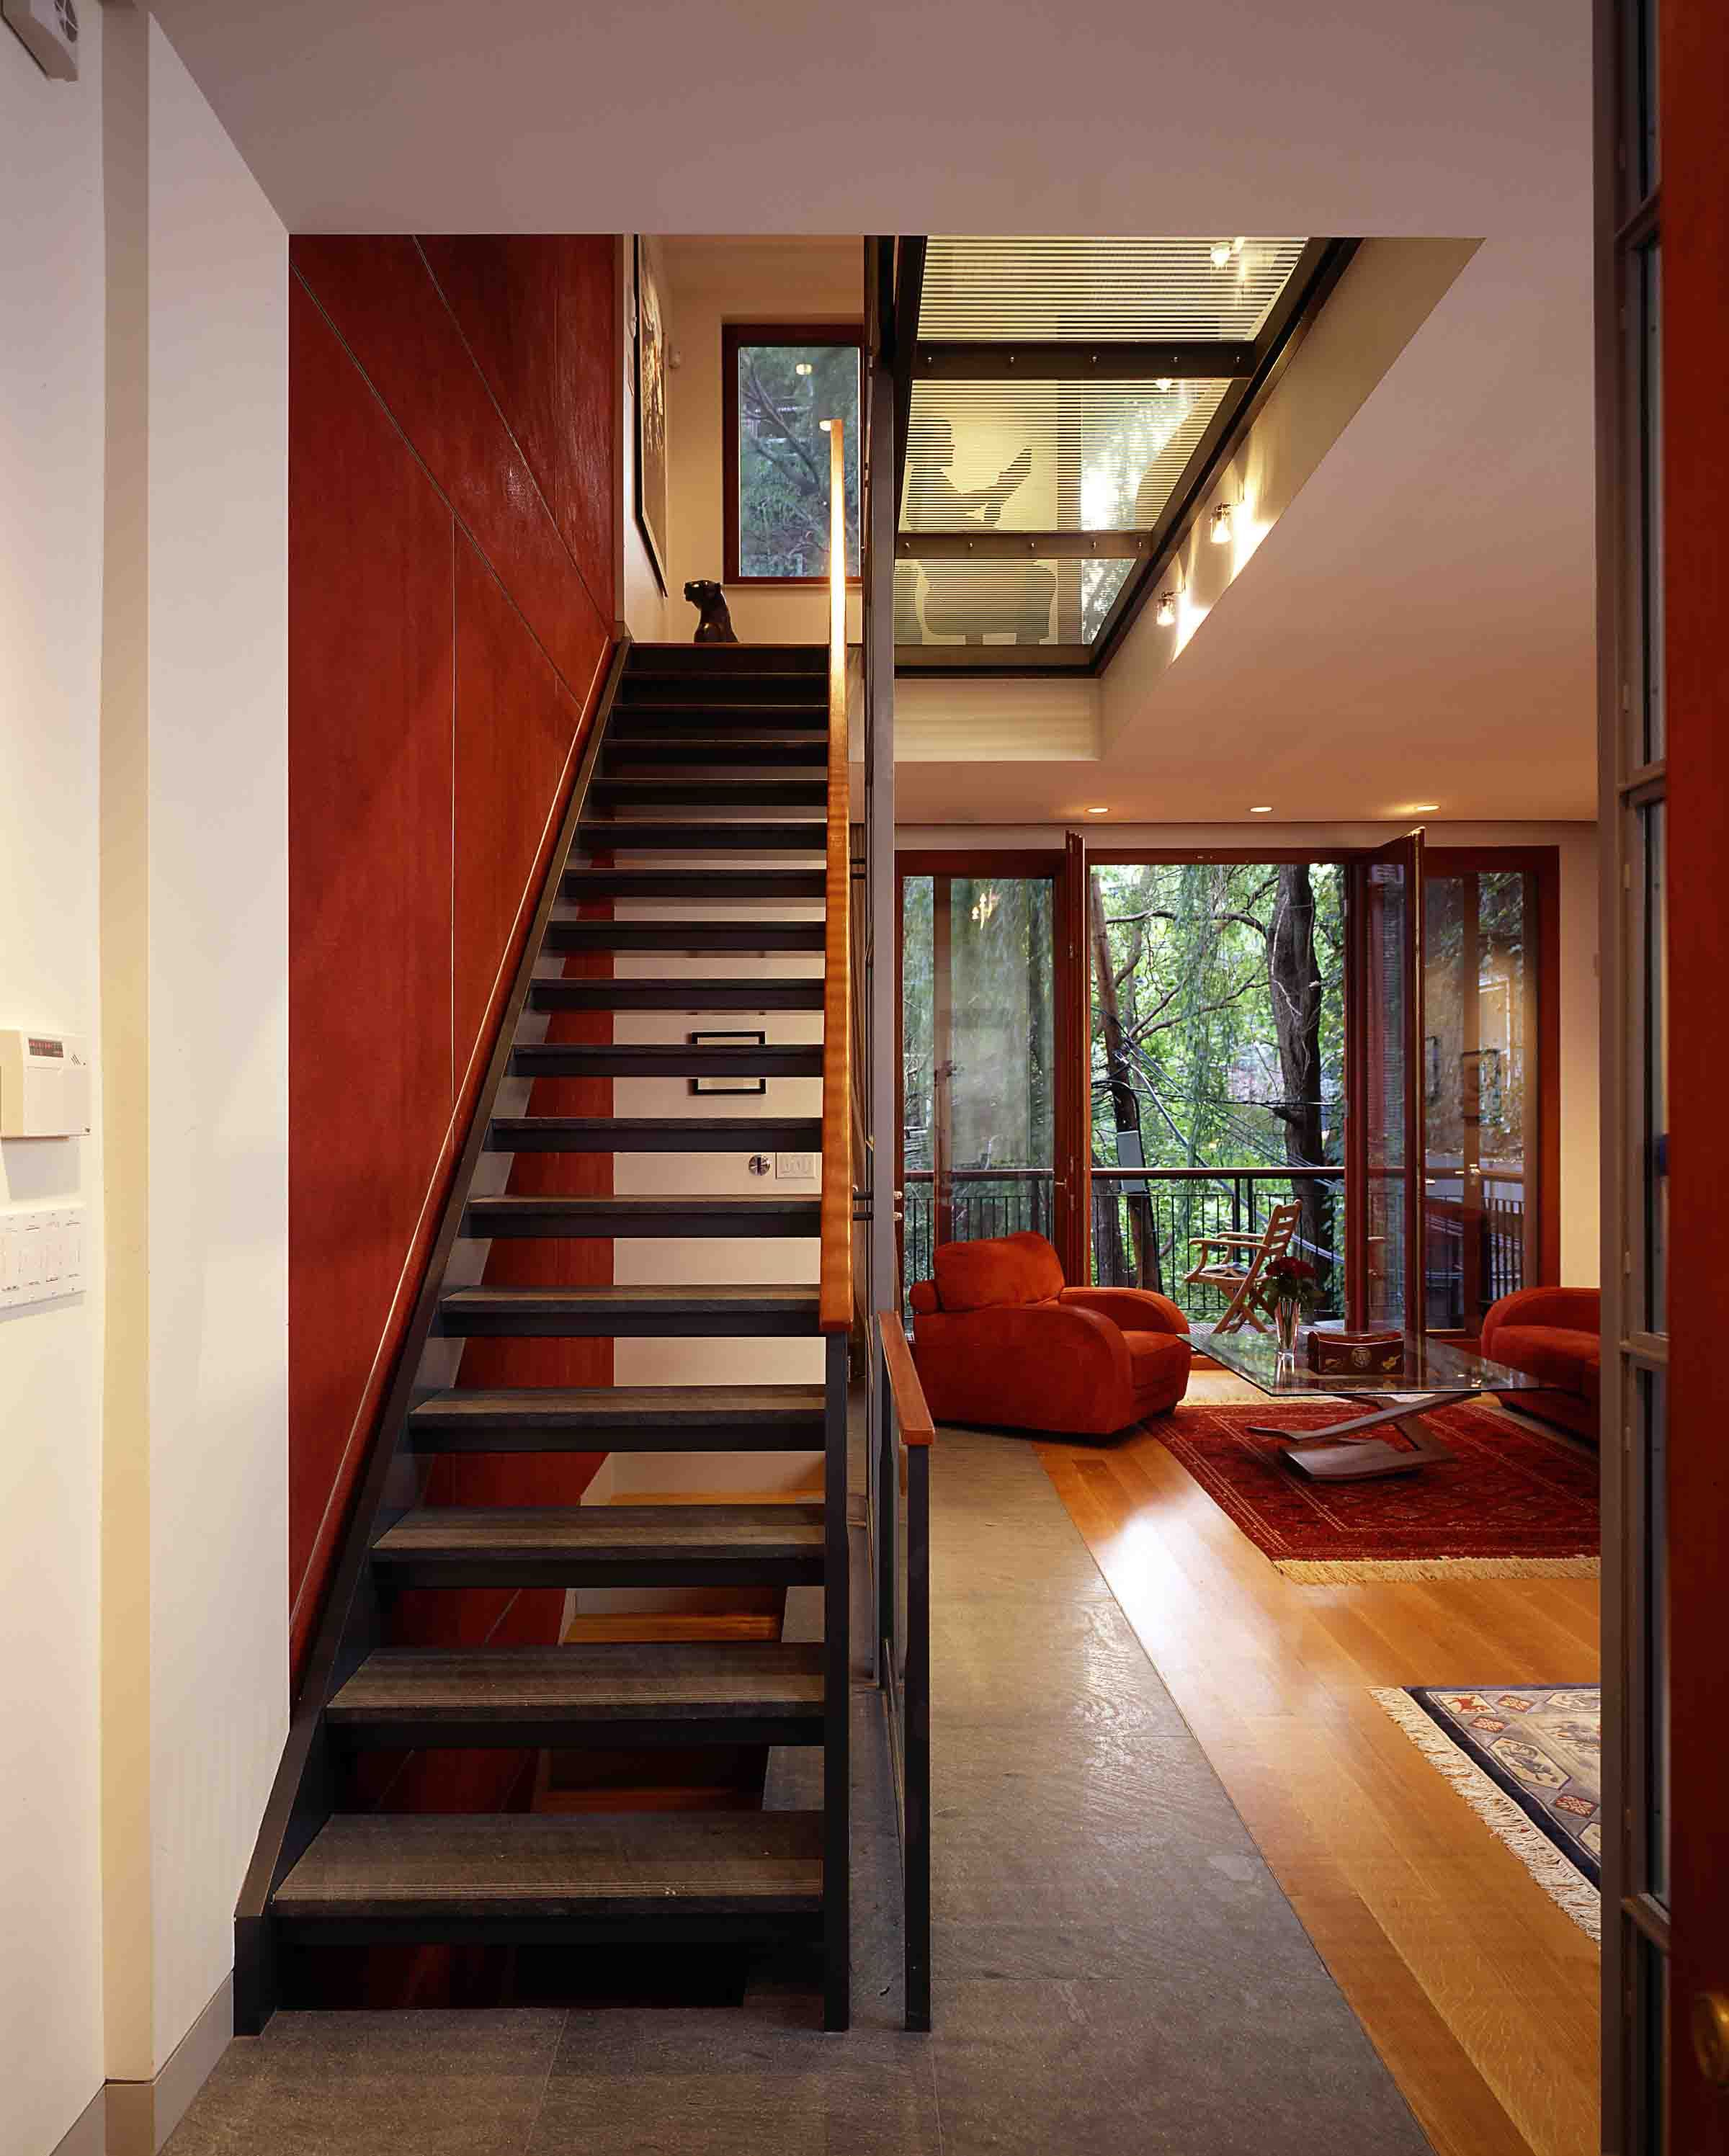 Modern Row House Plans: Peter Vaderwarker Photography // The